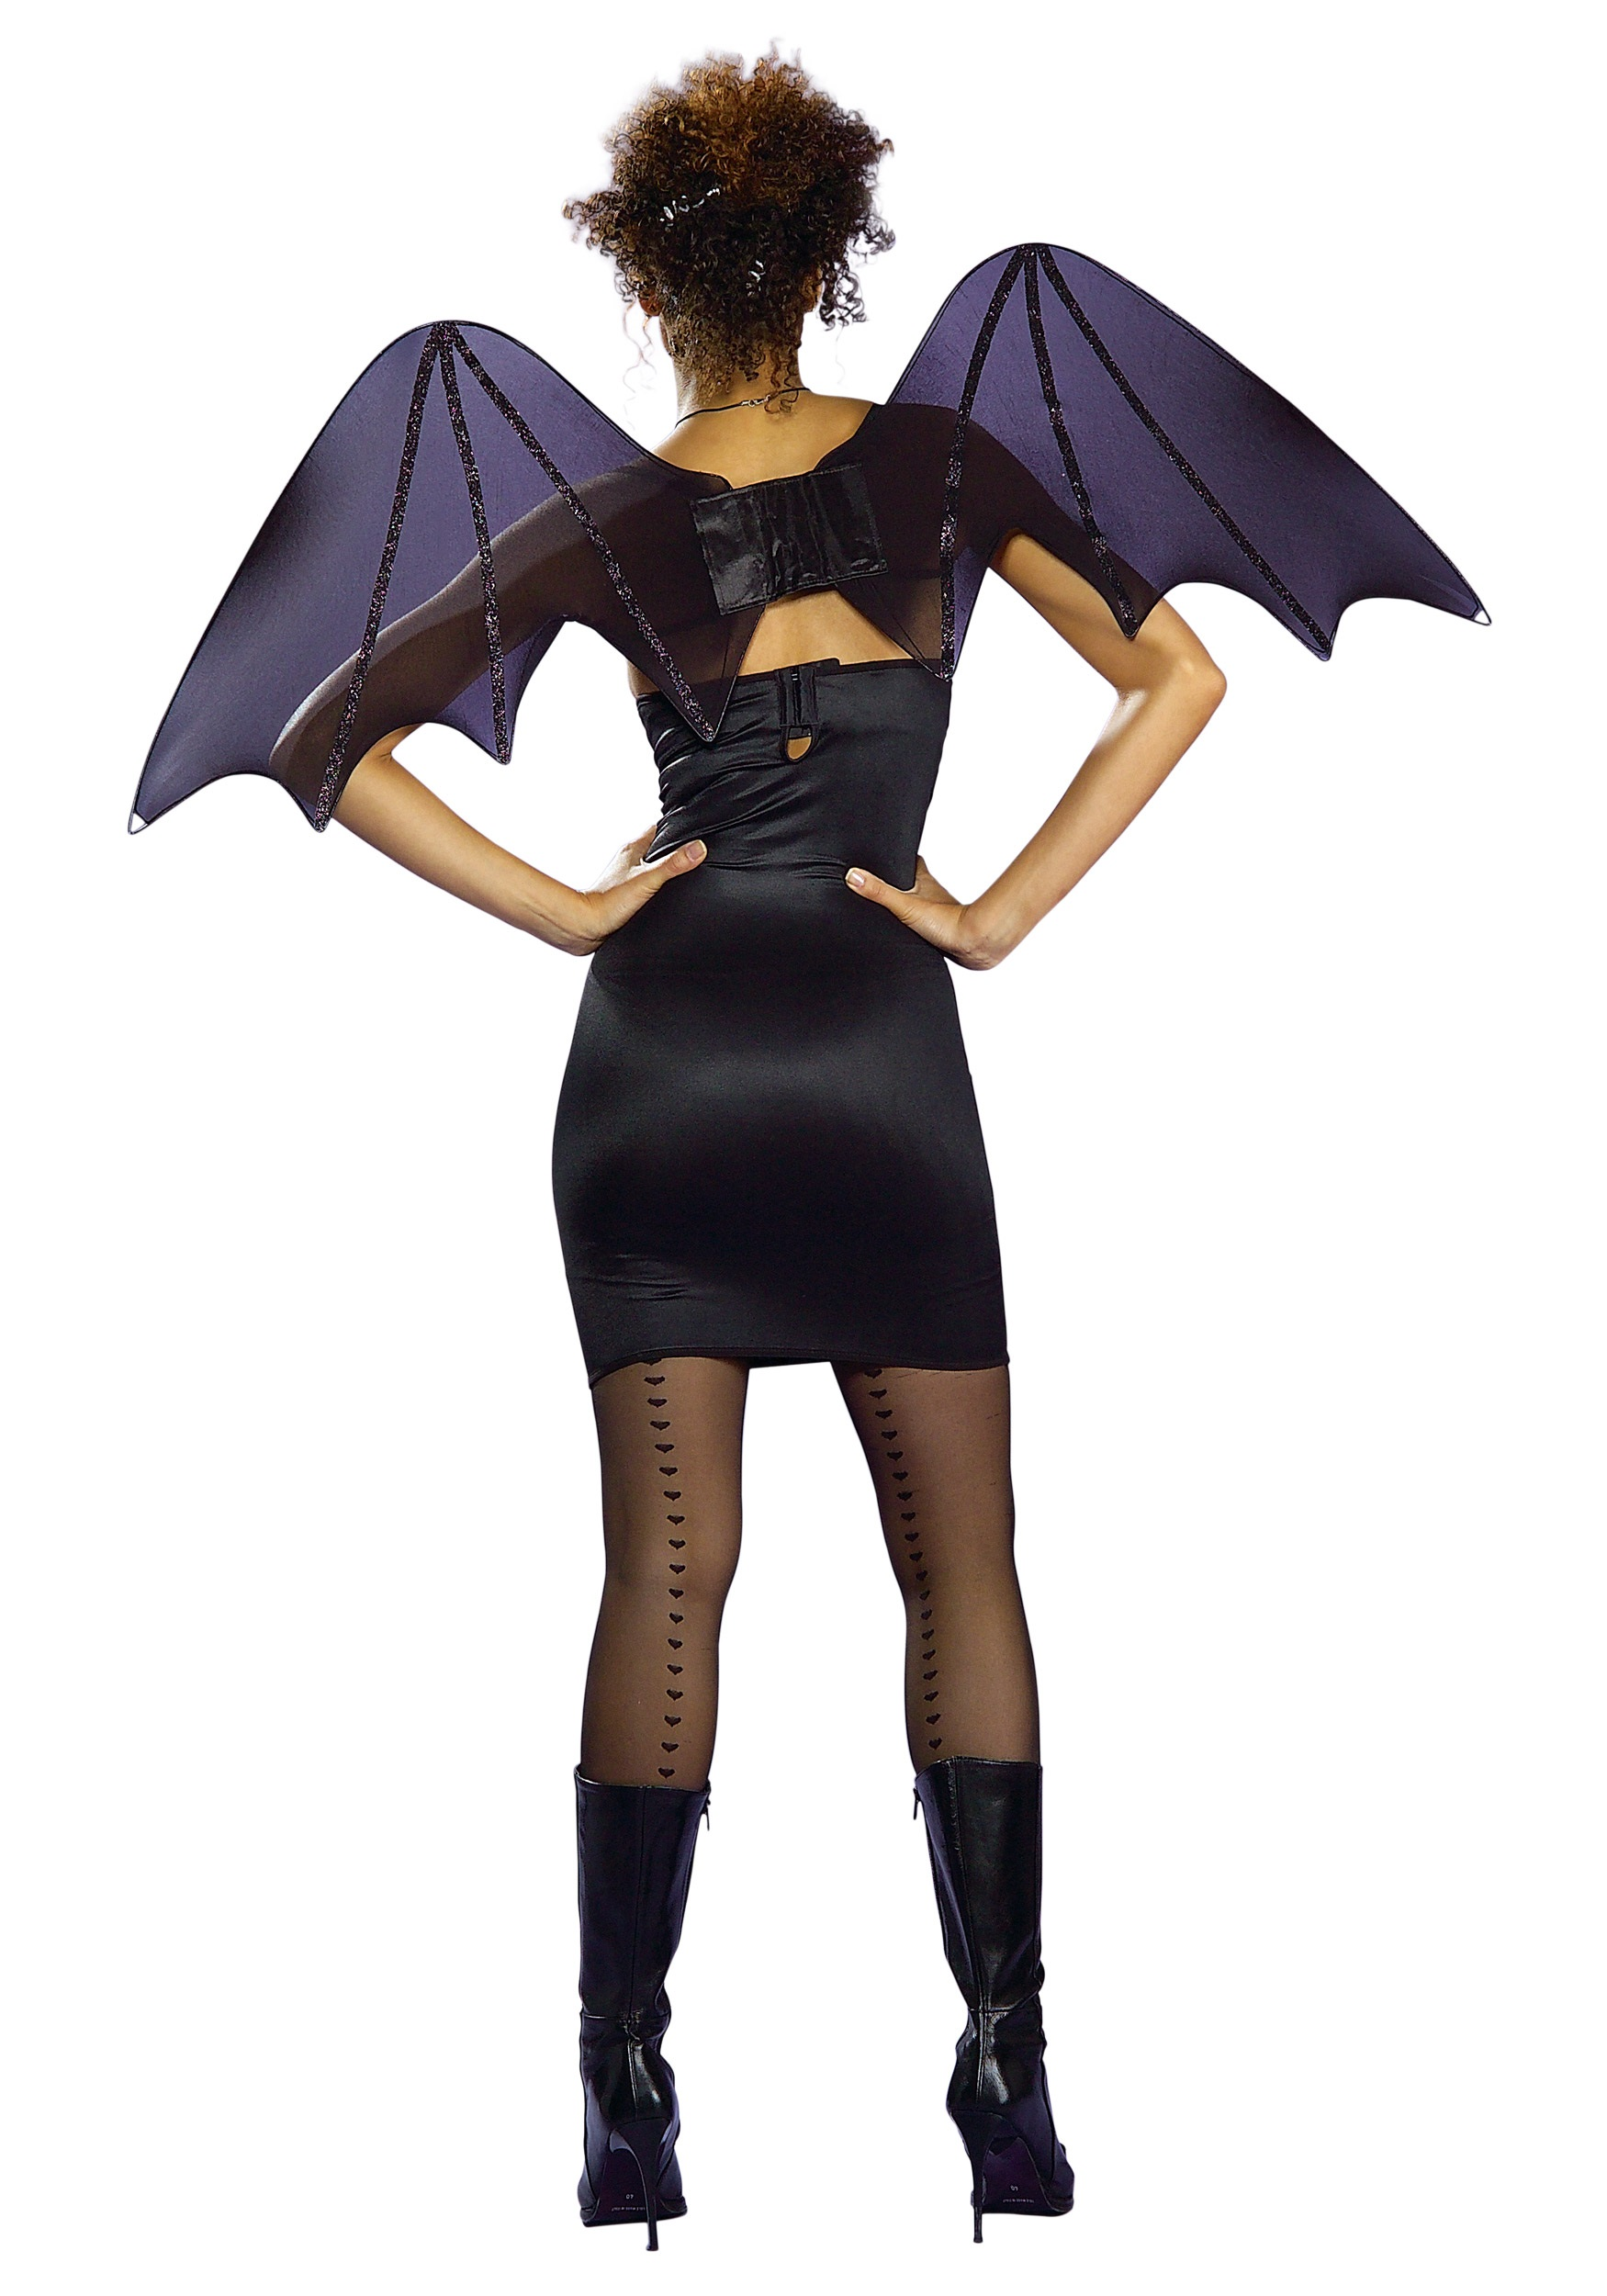 Bat wings costume accessories - photo#2